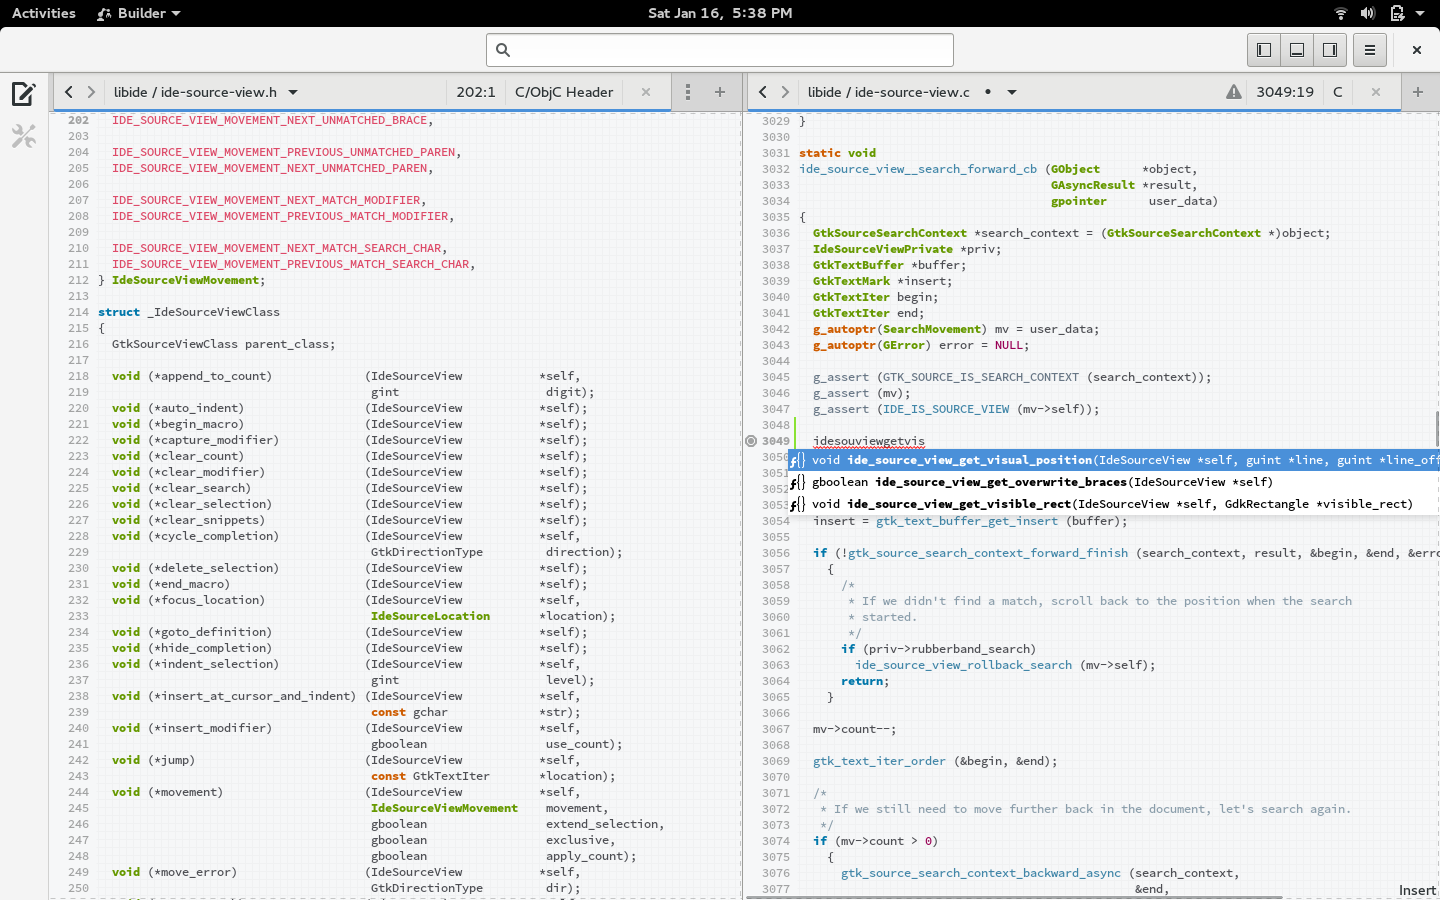 GNOME Builder screenshot